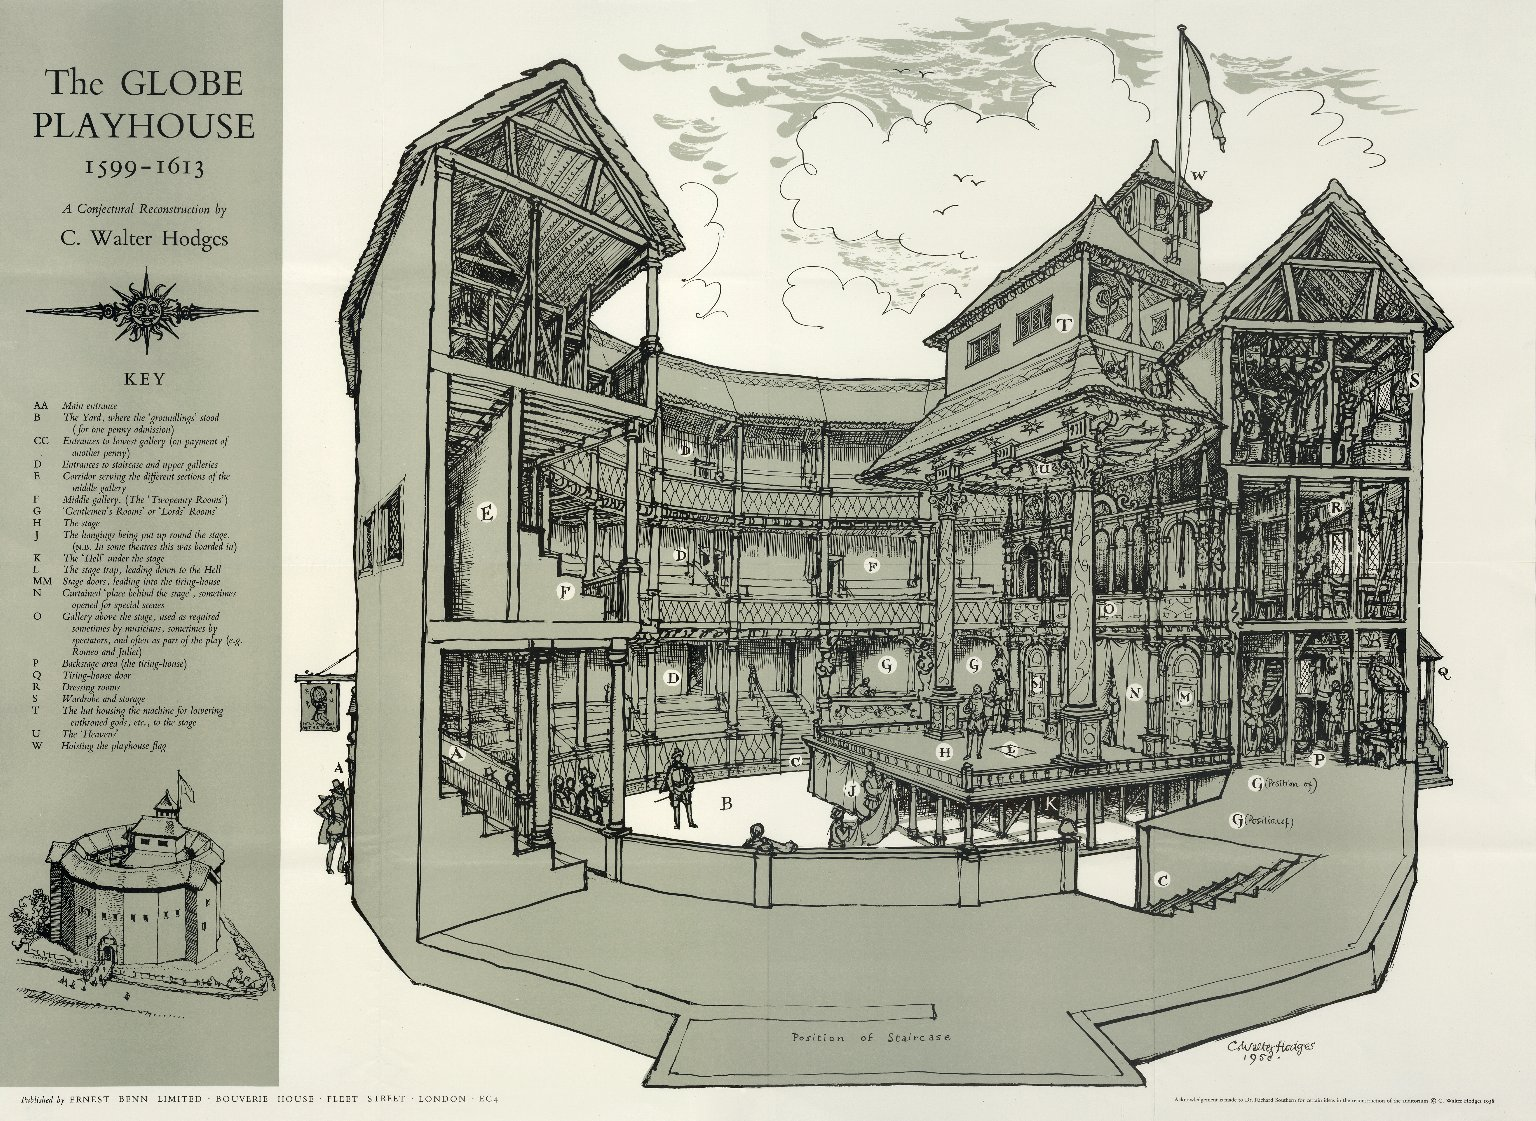 The Globe Playhouse, 1599-1613. Conjectural reconstruction of the Globe theatre based on archeological and documentary evidence. Made in 1958 by C. Walter Hodges (1909–2004), English artist and writer. Collection: LUNA: Folger Digital Image Collection. (CC BY-SA 4.0).